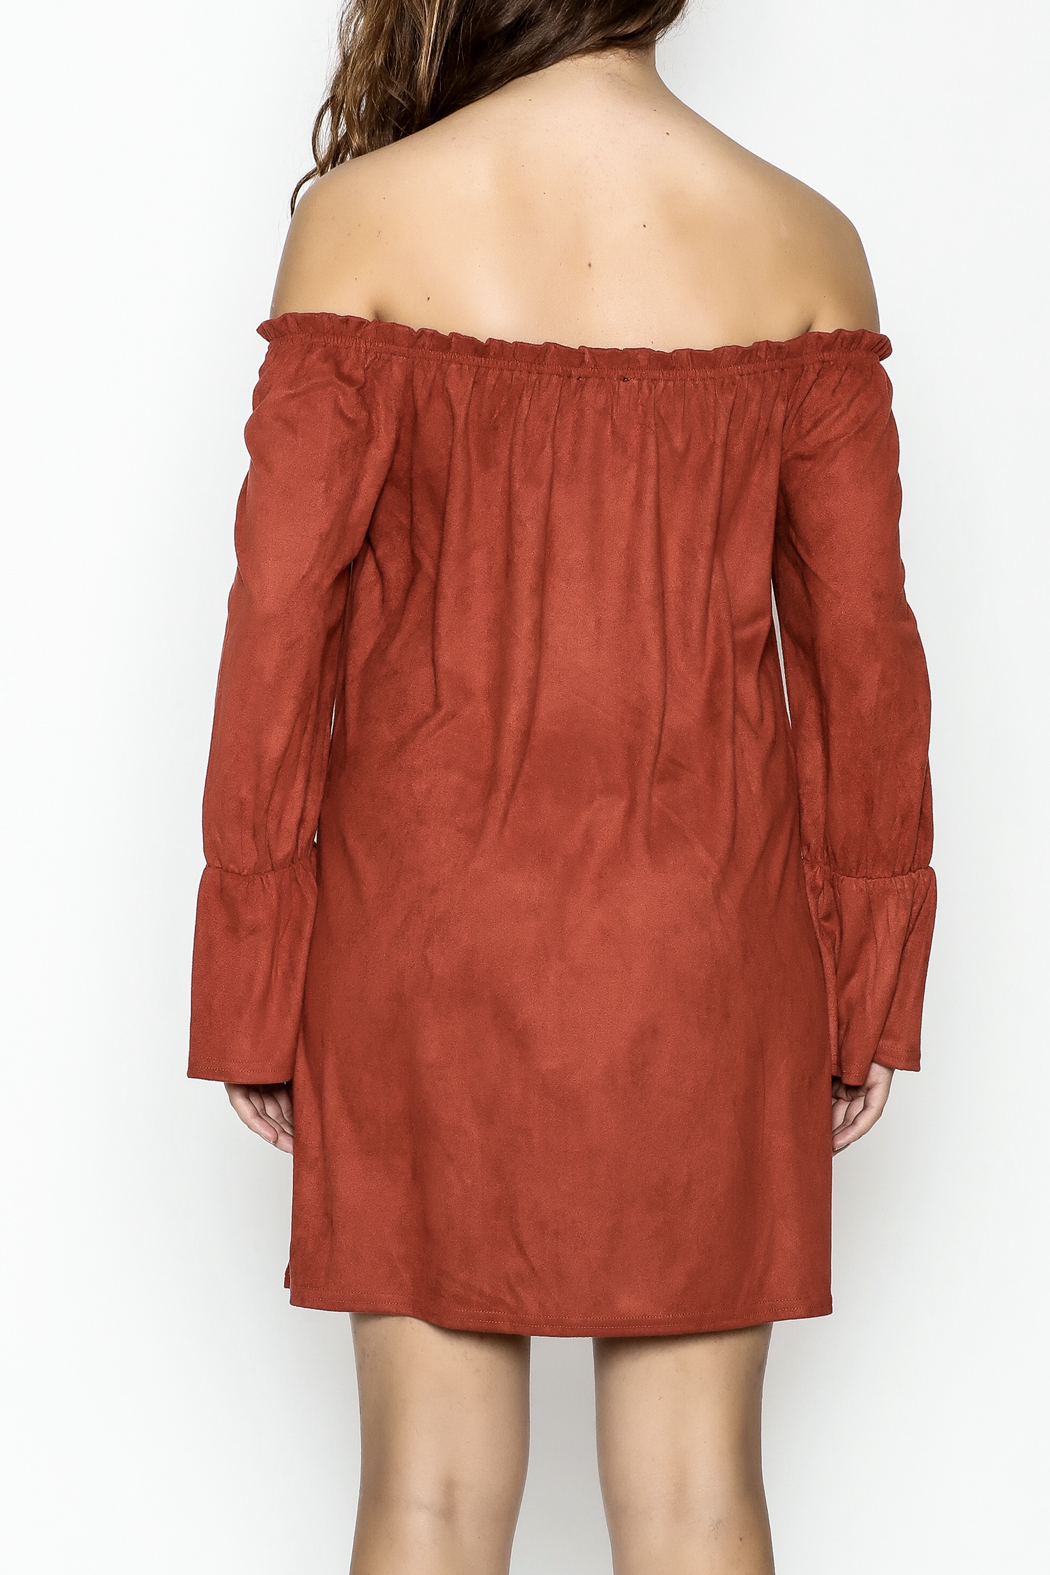 Very J Rust Bell Sleeve Dress - Back Cropped Image